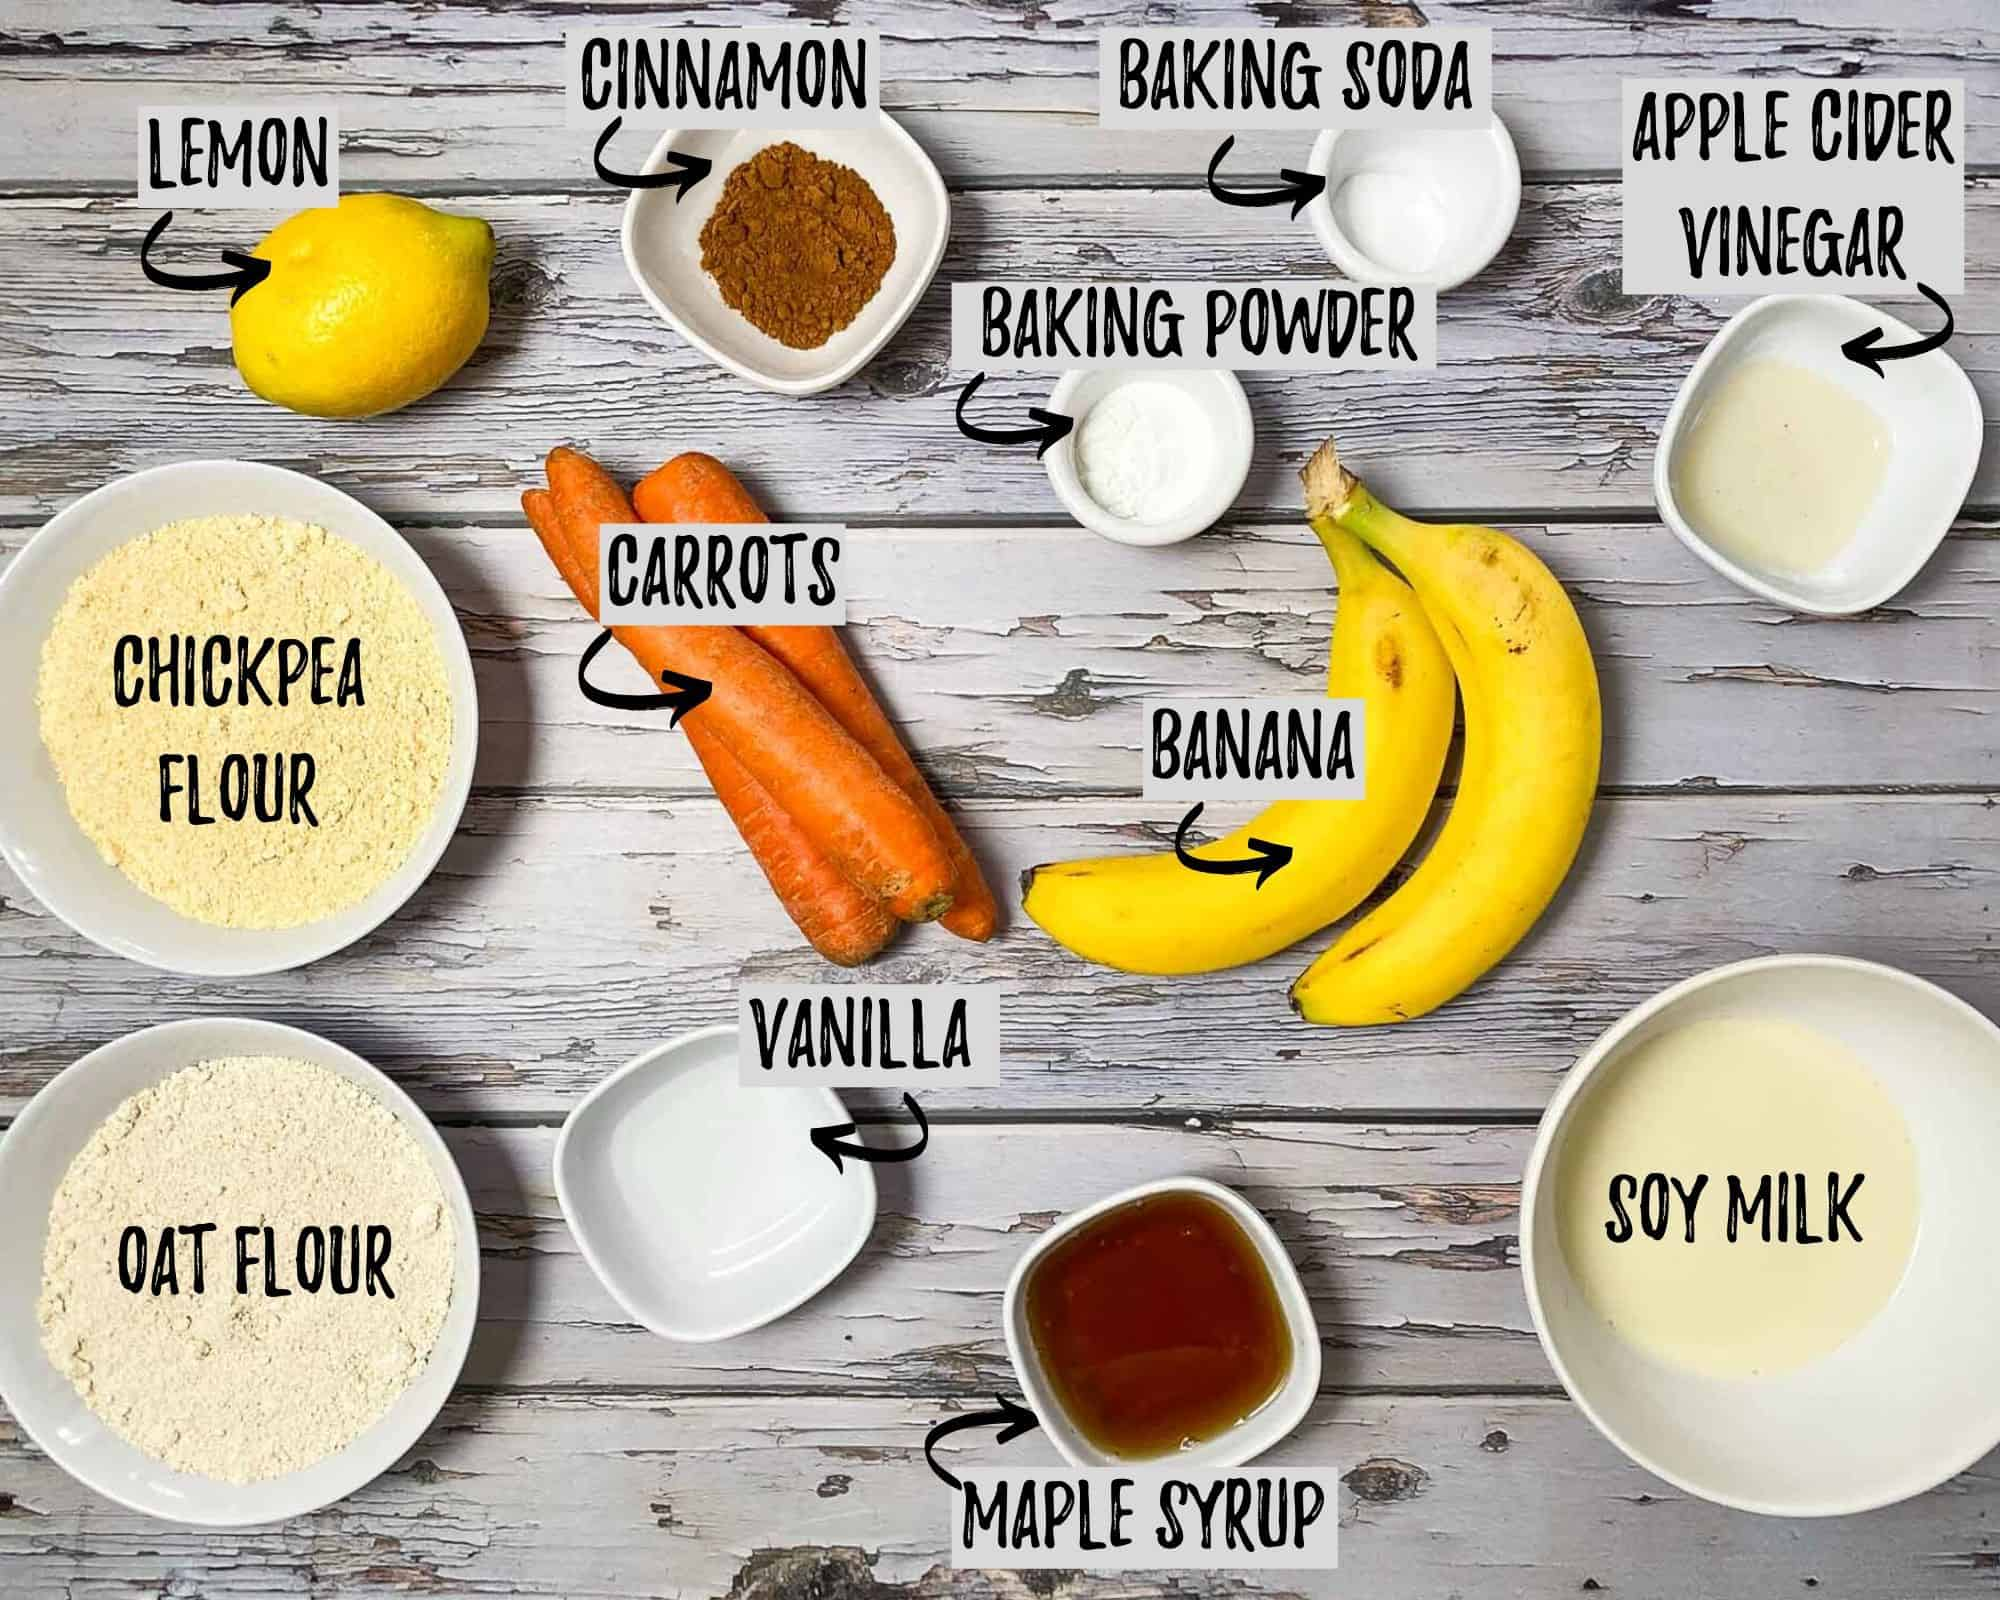 bananas, bowl of flour, carrots, syrup, lemon and spices in bowls on grey deck